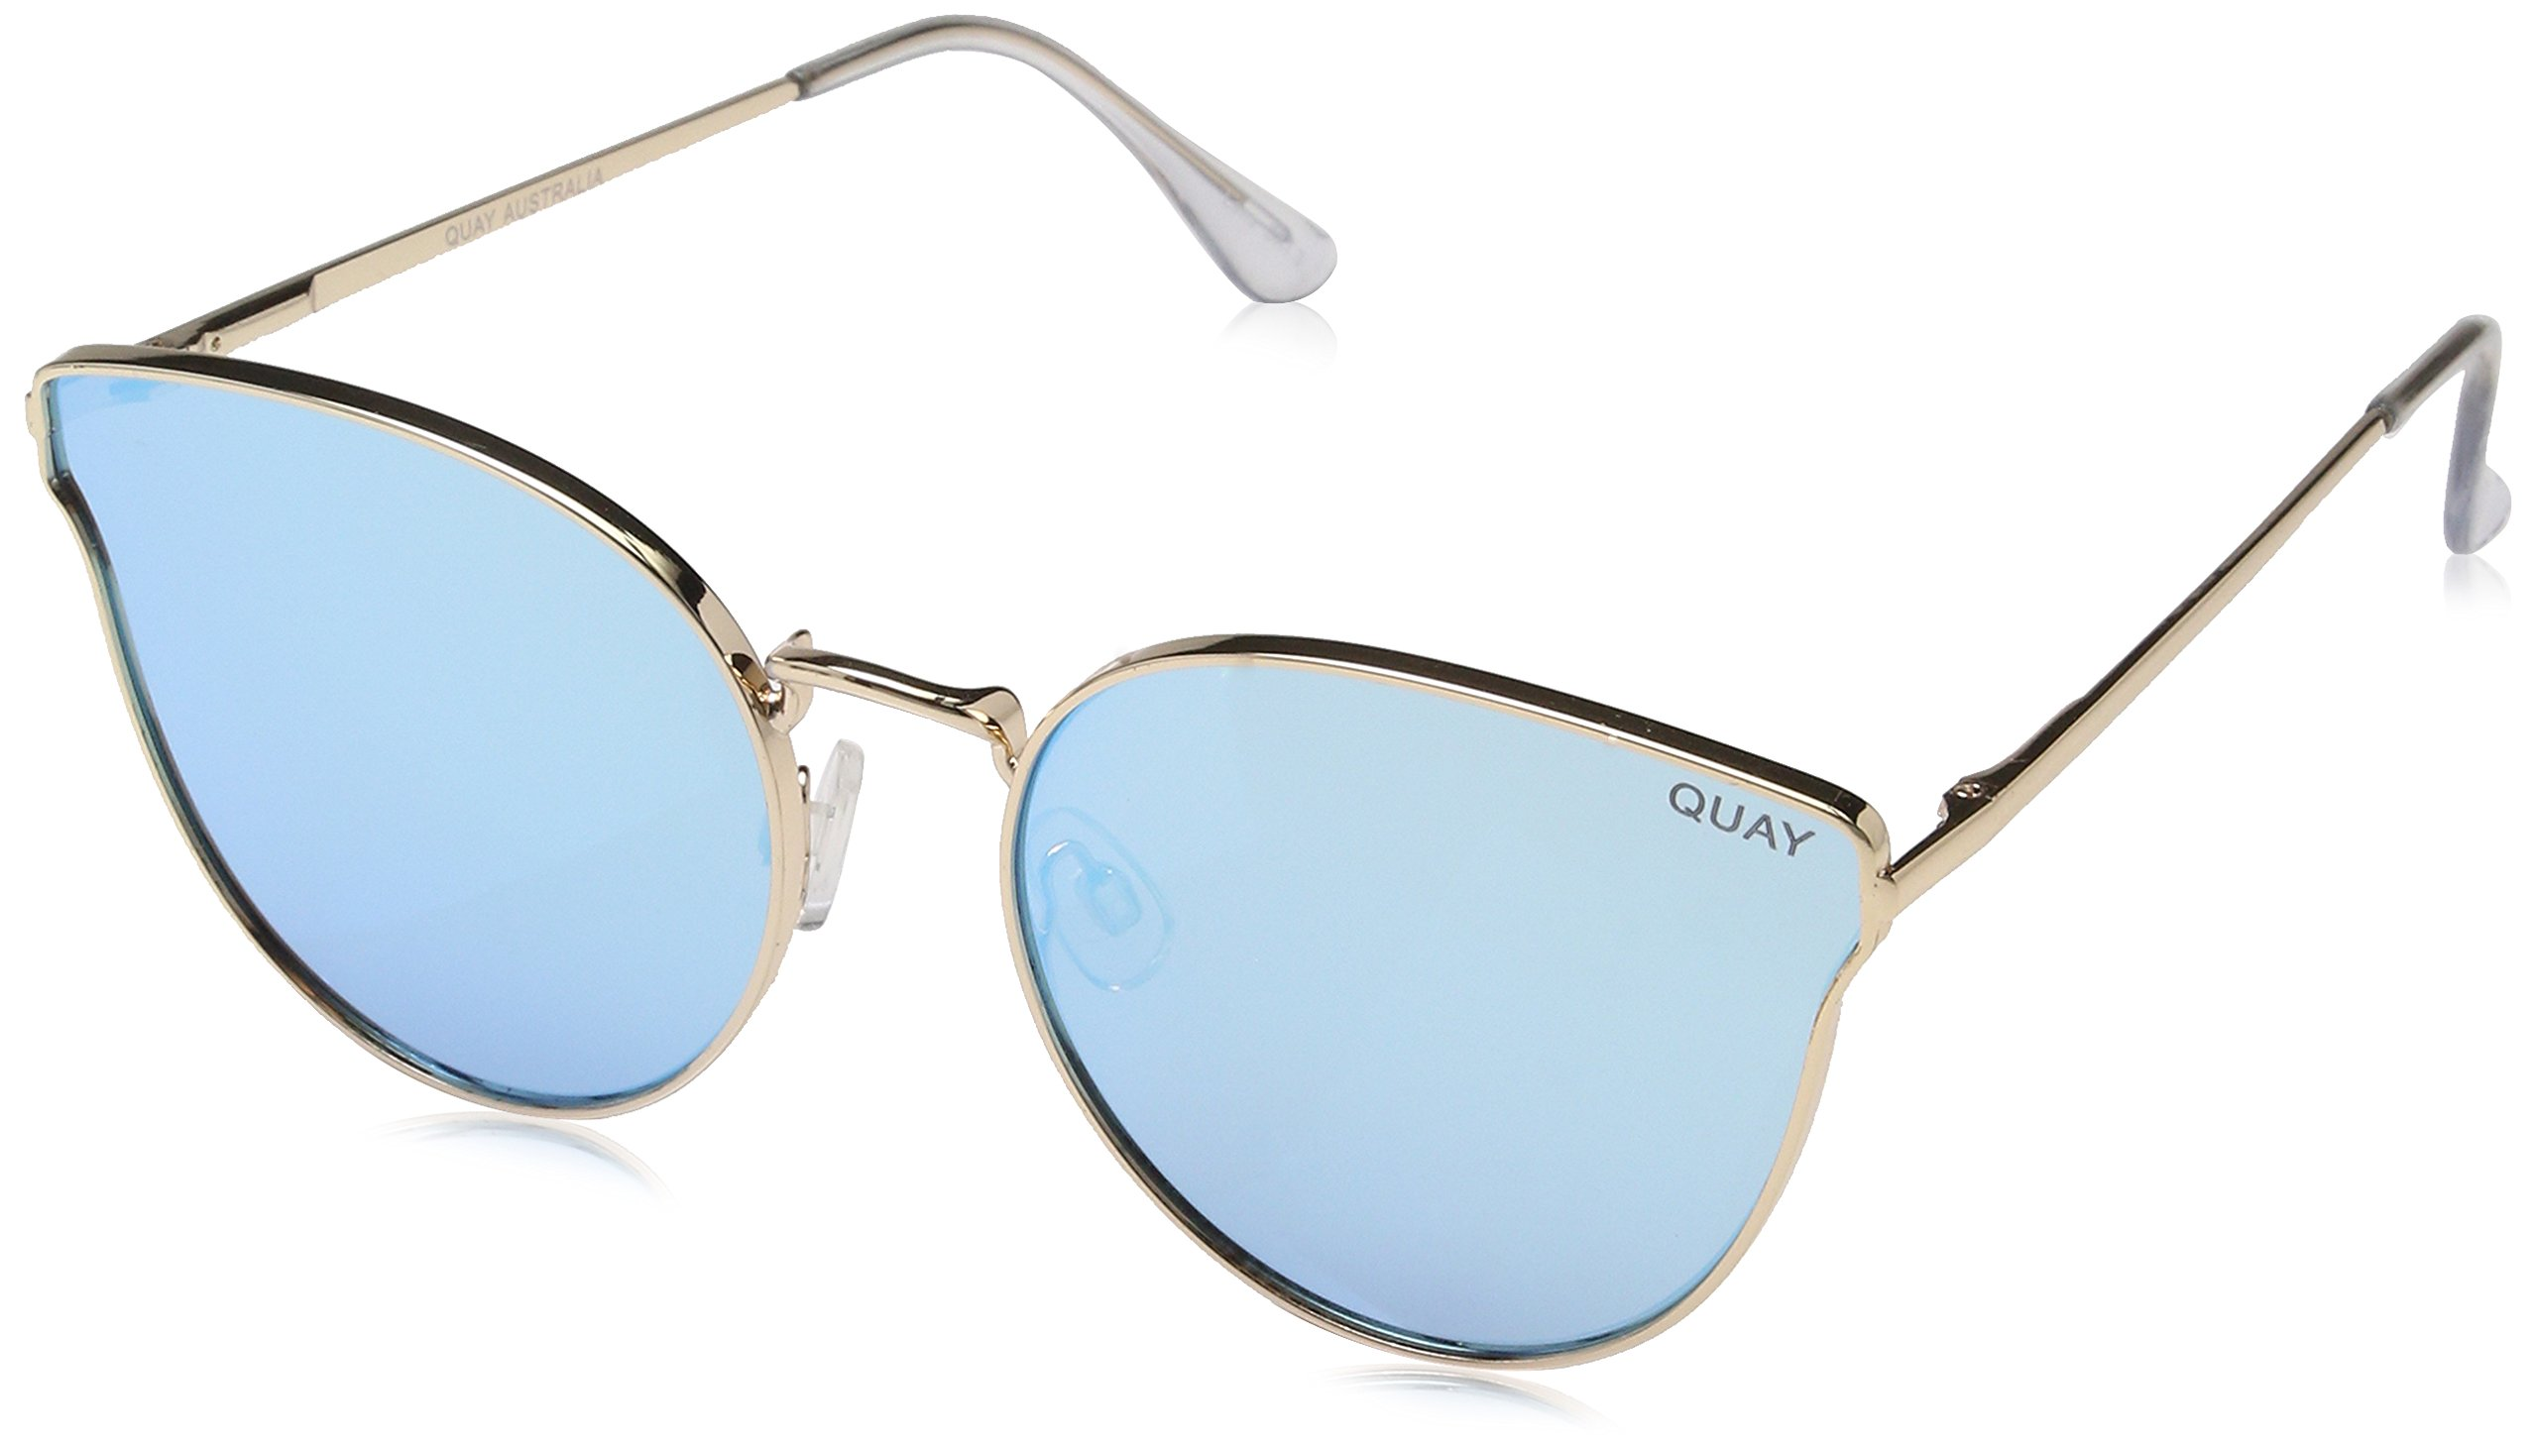 Quay Women's All My Love Sunglasses, Gold/Blue, One Size